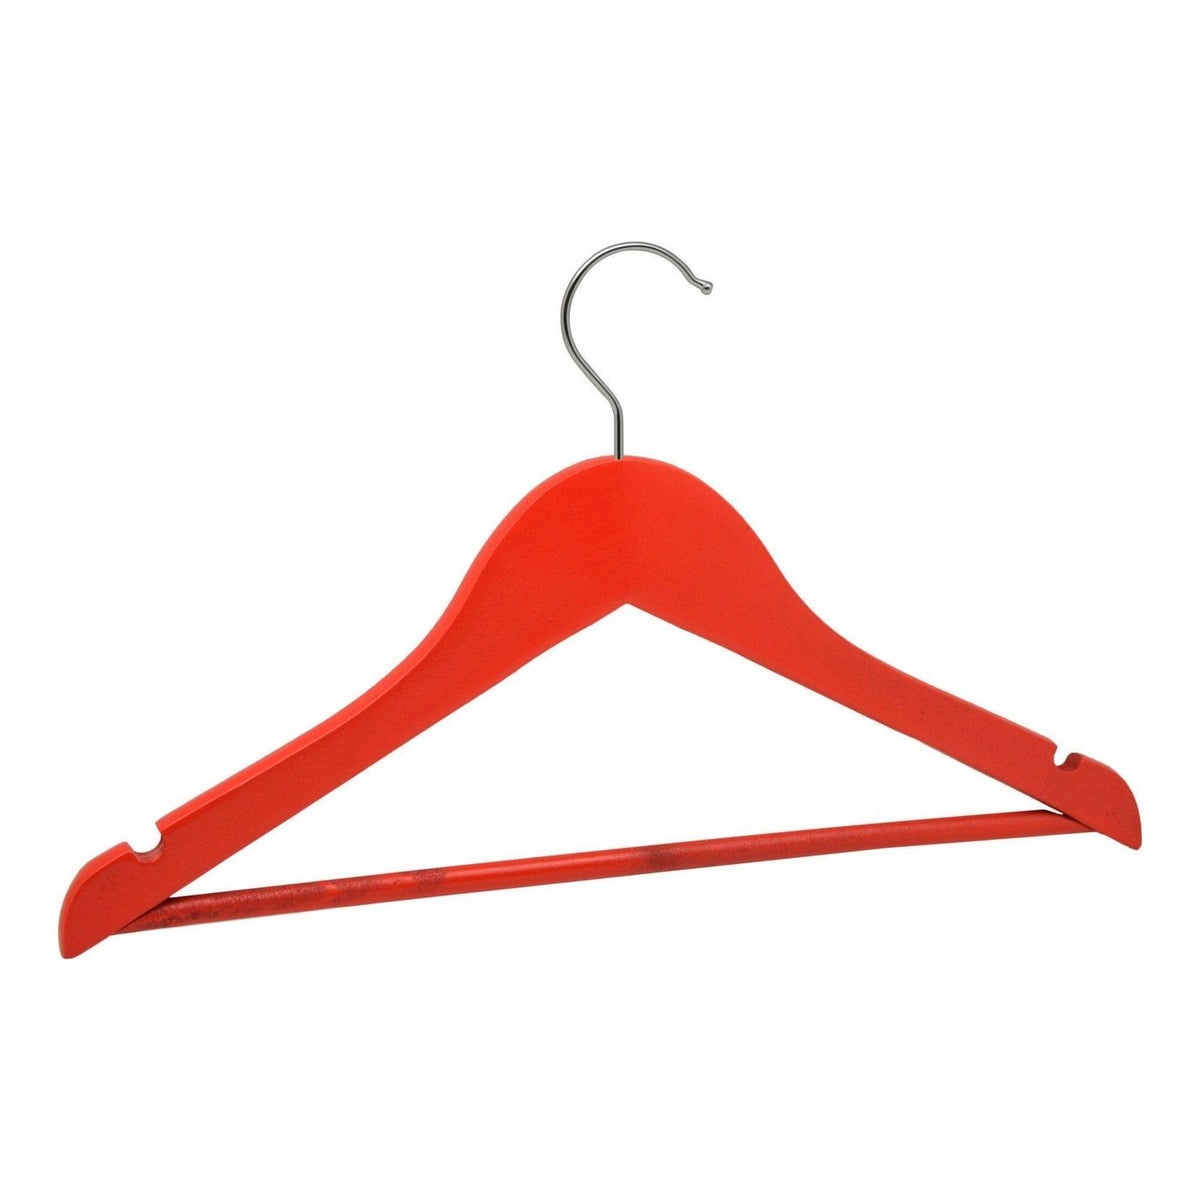 Harbour Housewares Red Childrens Wooden Clothes / Coat Hanger